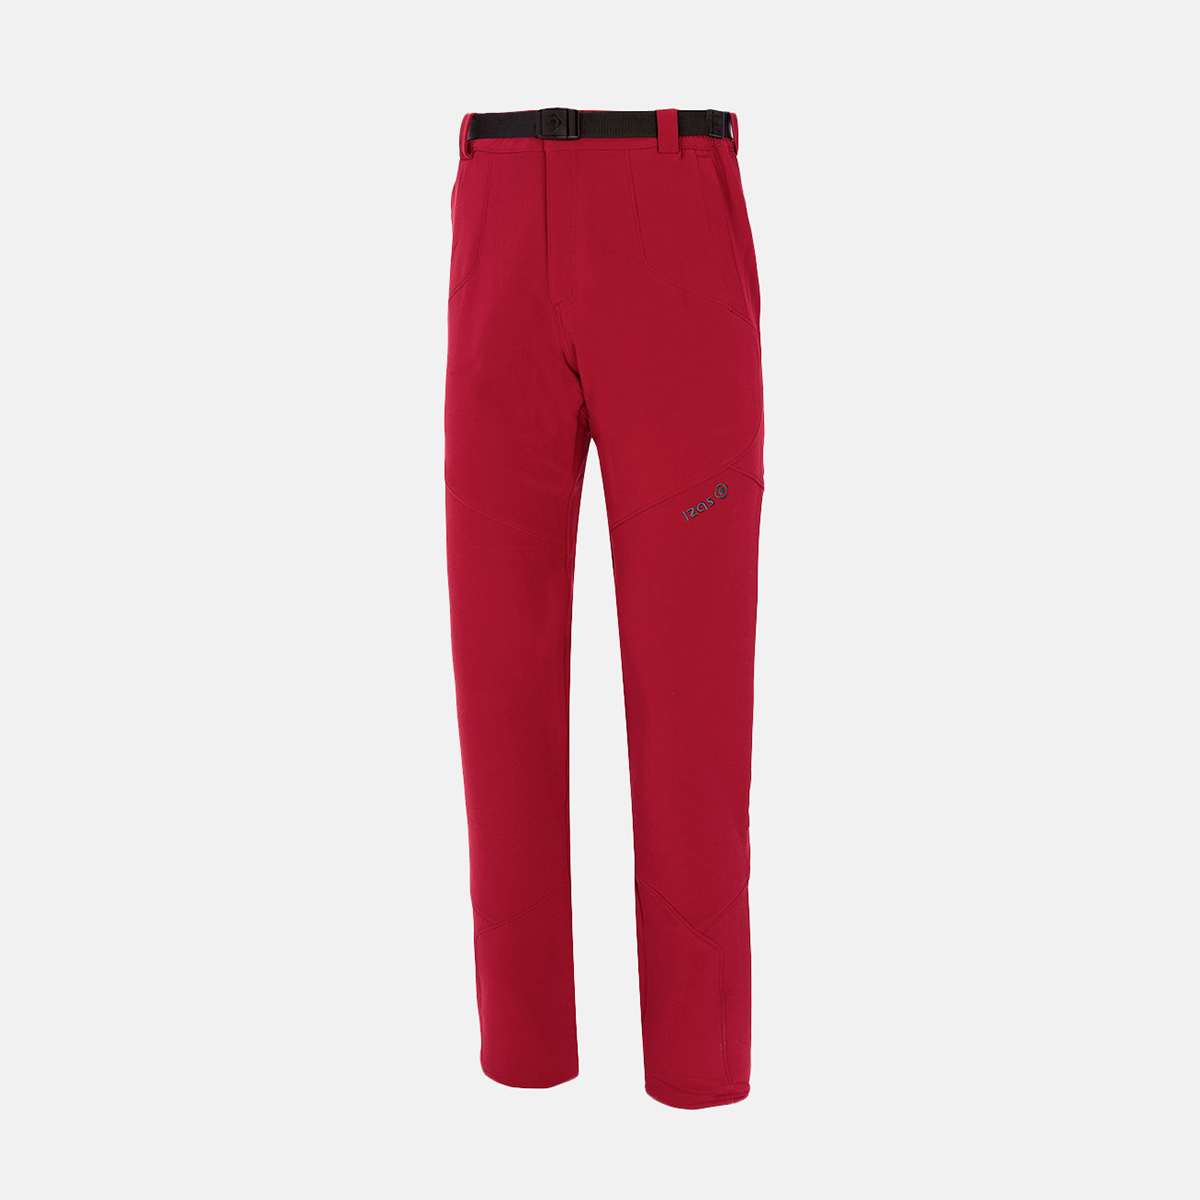 MAN'S LUBES STRETCH PANT RED